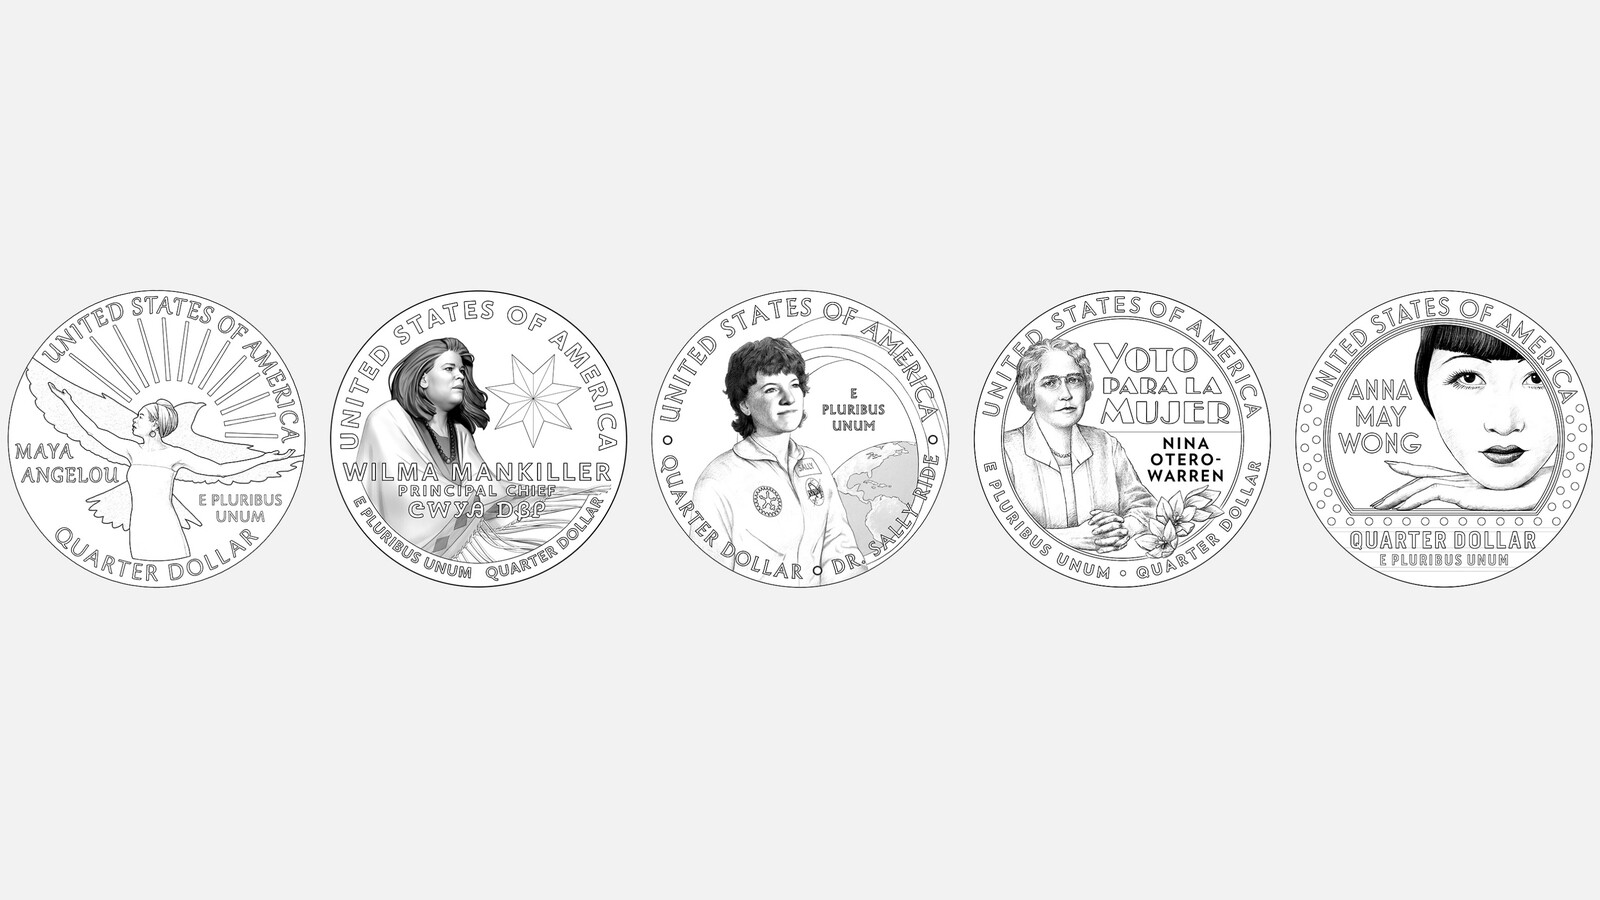 www.wlfi.com: From Maya Angelou to Anna May Wong, these pioneering women will appear on US quarters next year